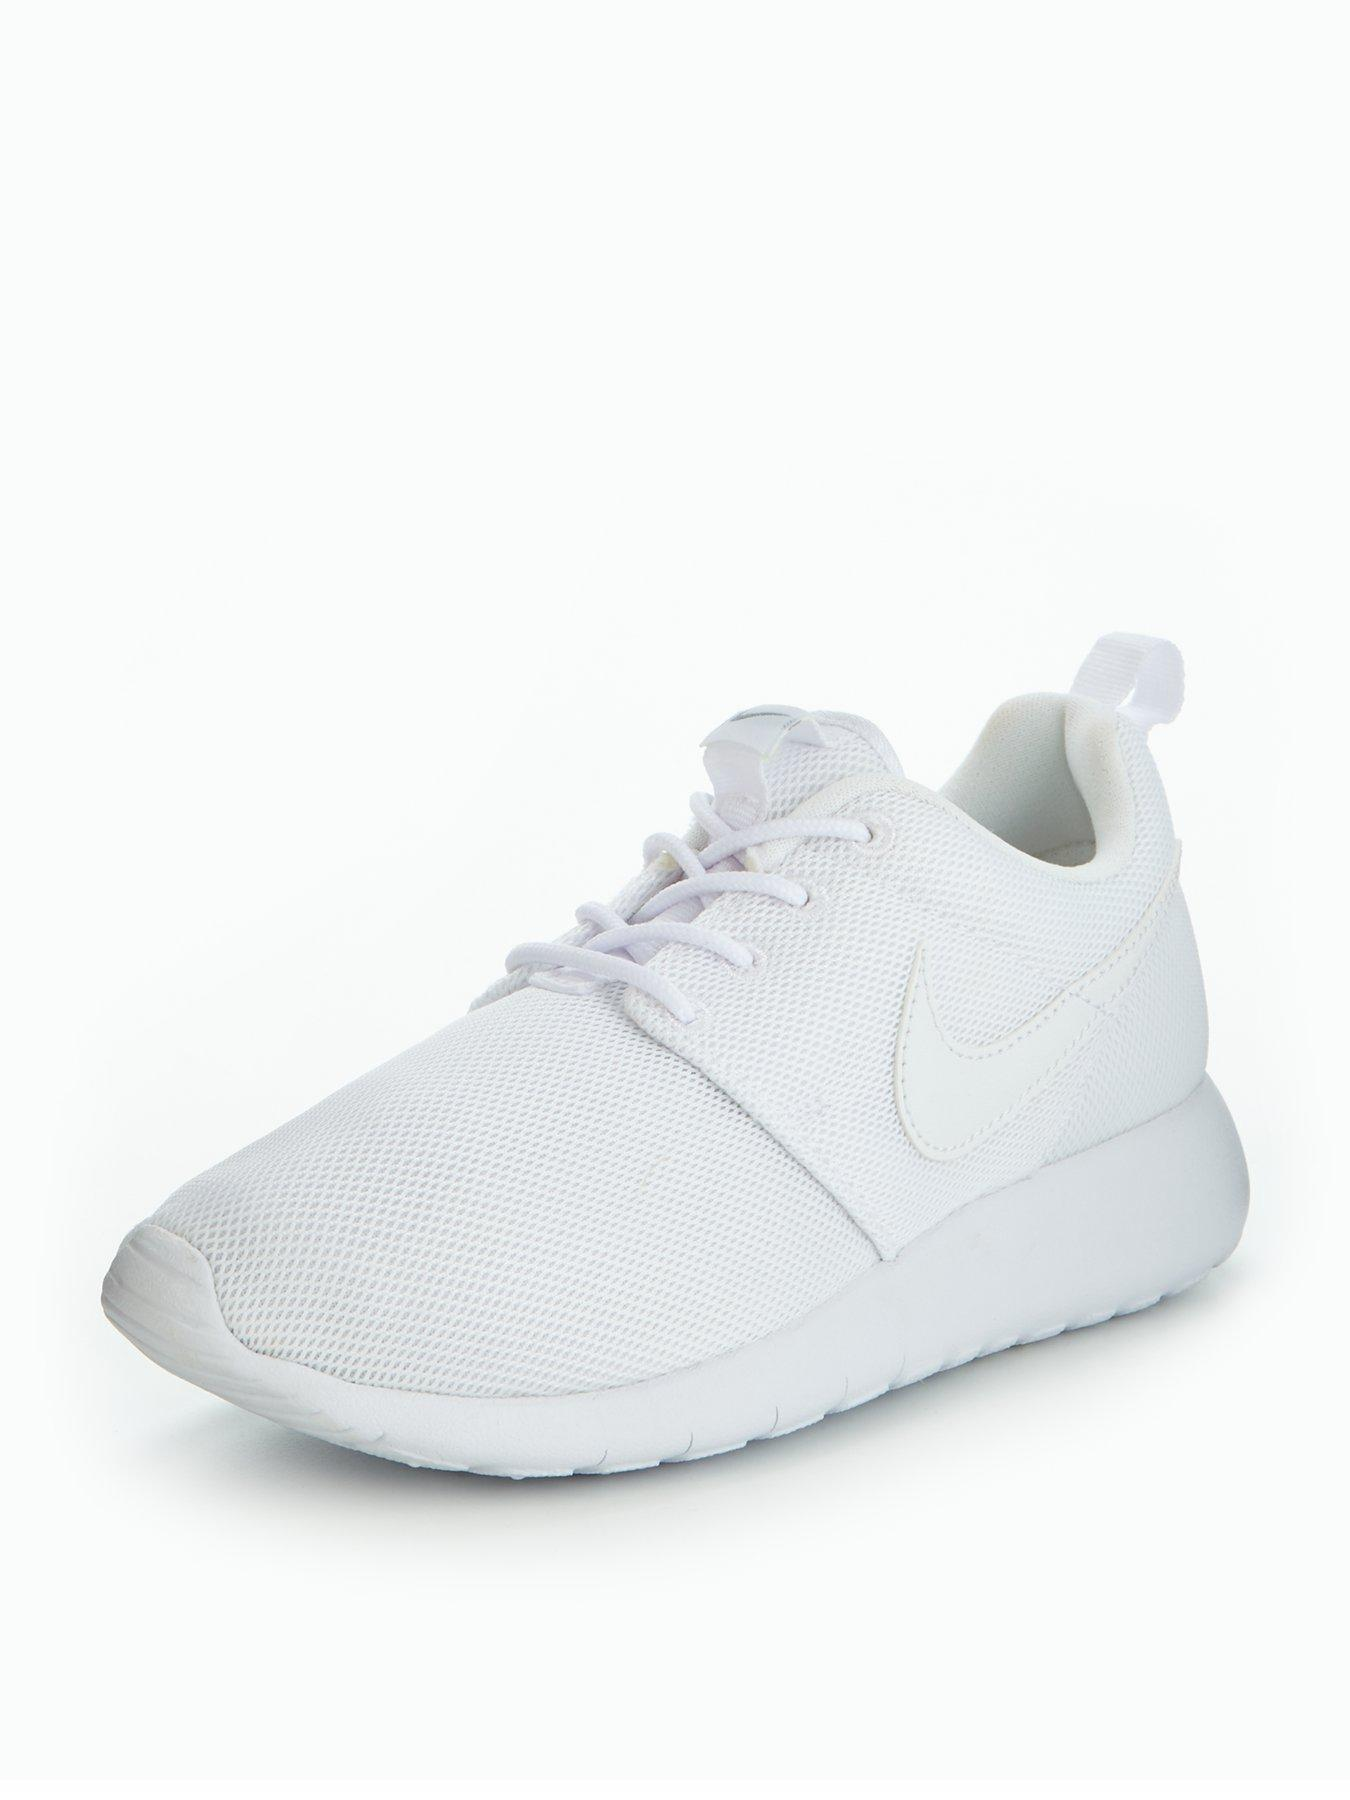 Nike nike roshe two The Athlete 's Foot